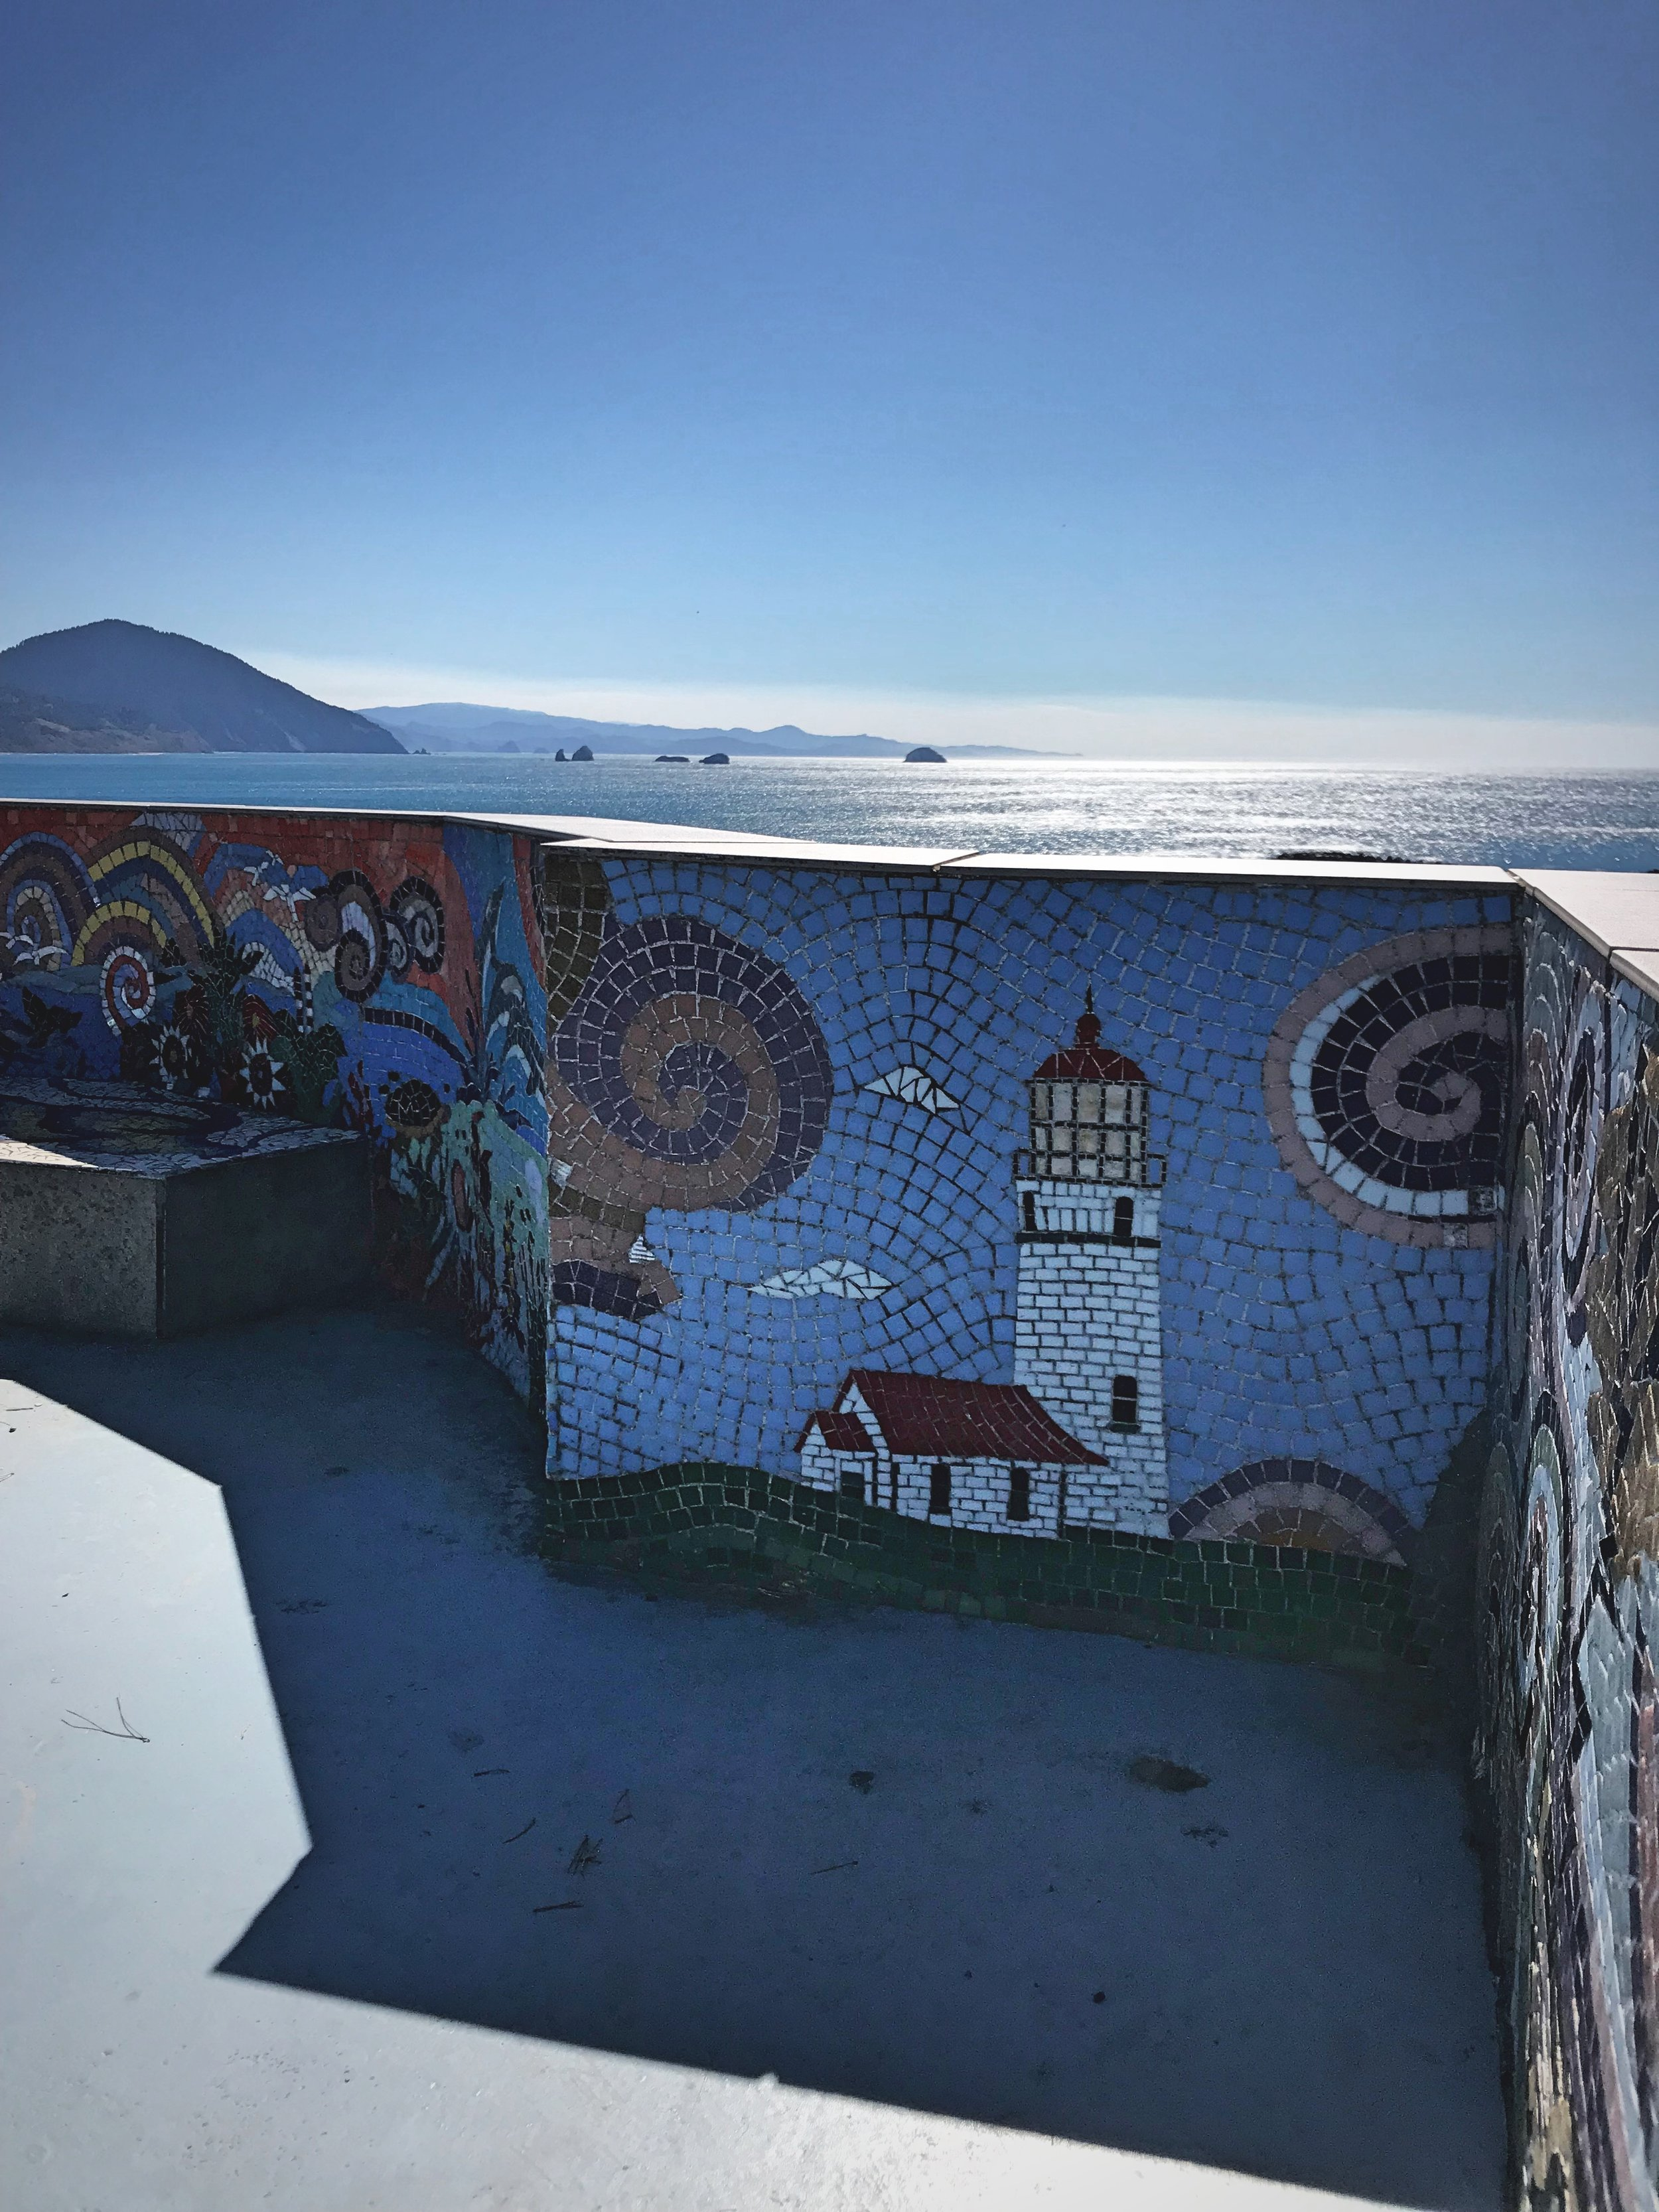 We spotted this mosaic depiction of the Cape Blanco lighthouse in Port Orford, Oregon.